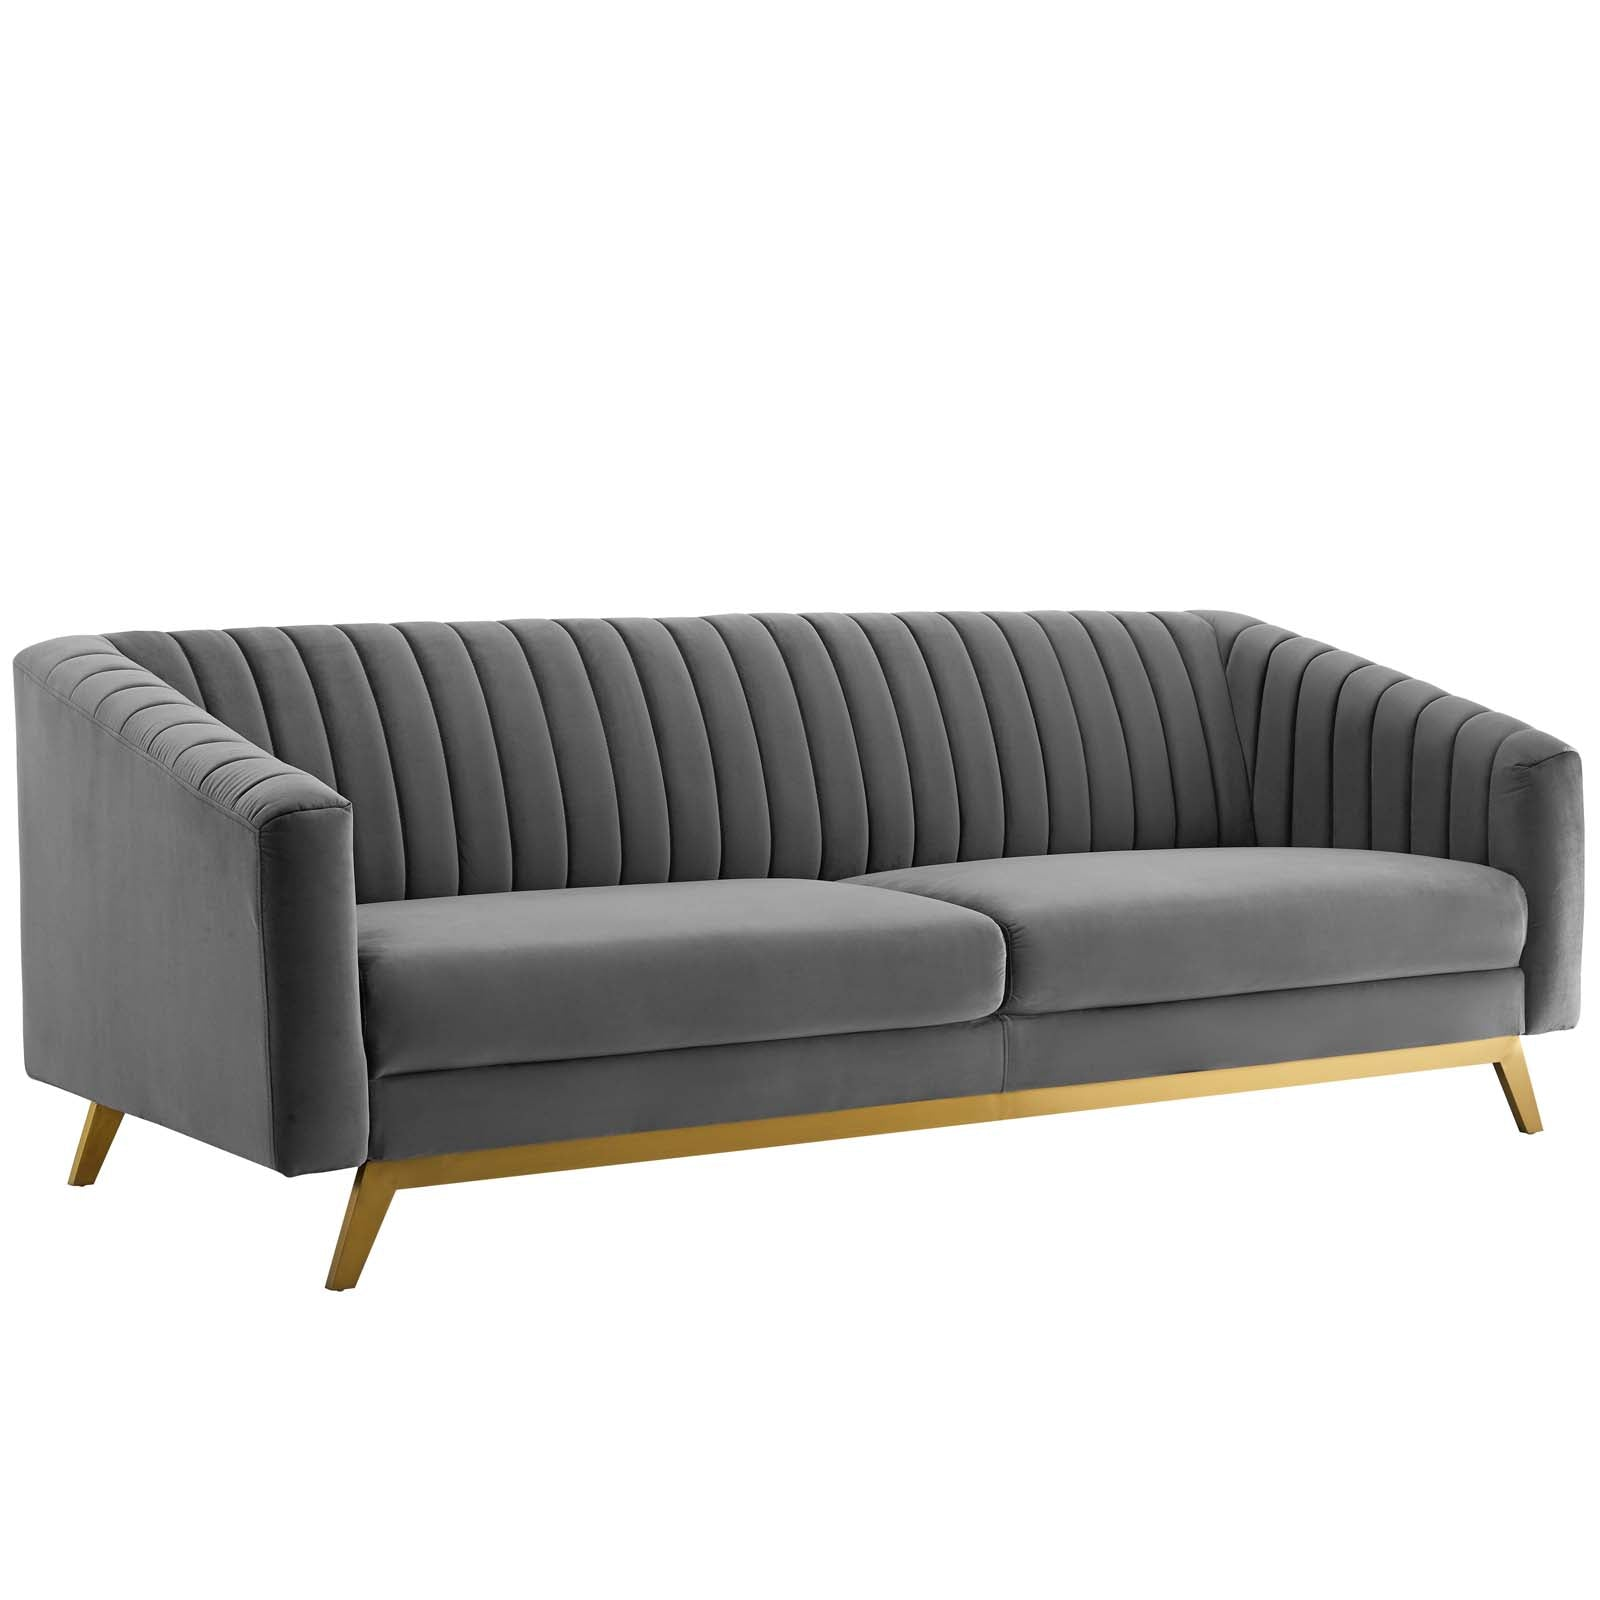 Valiant Vertical Channel Tufted Performance Velvet Sofa